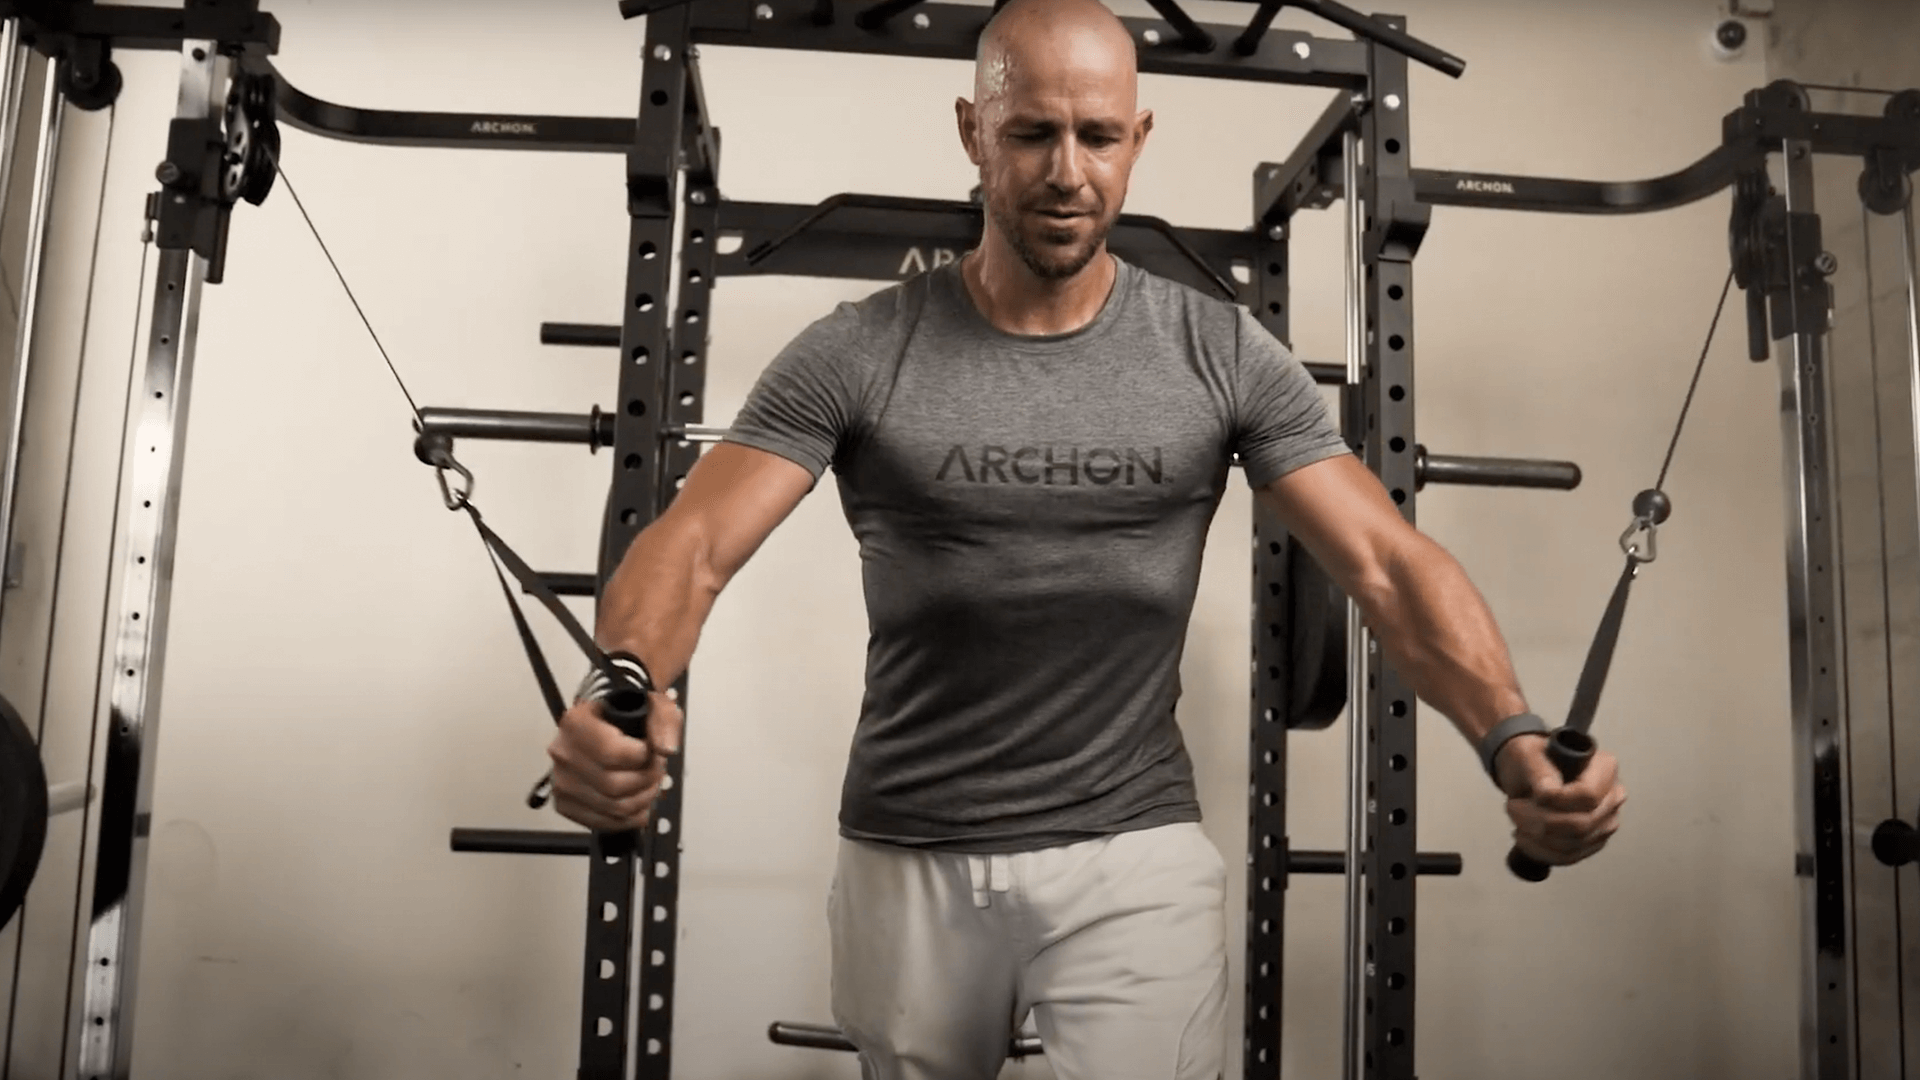 Archon Fitness - gym in your home - exercise equipment store